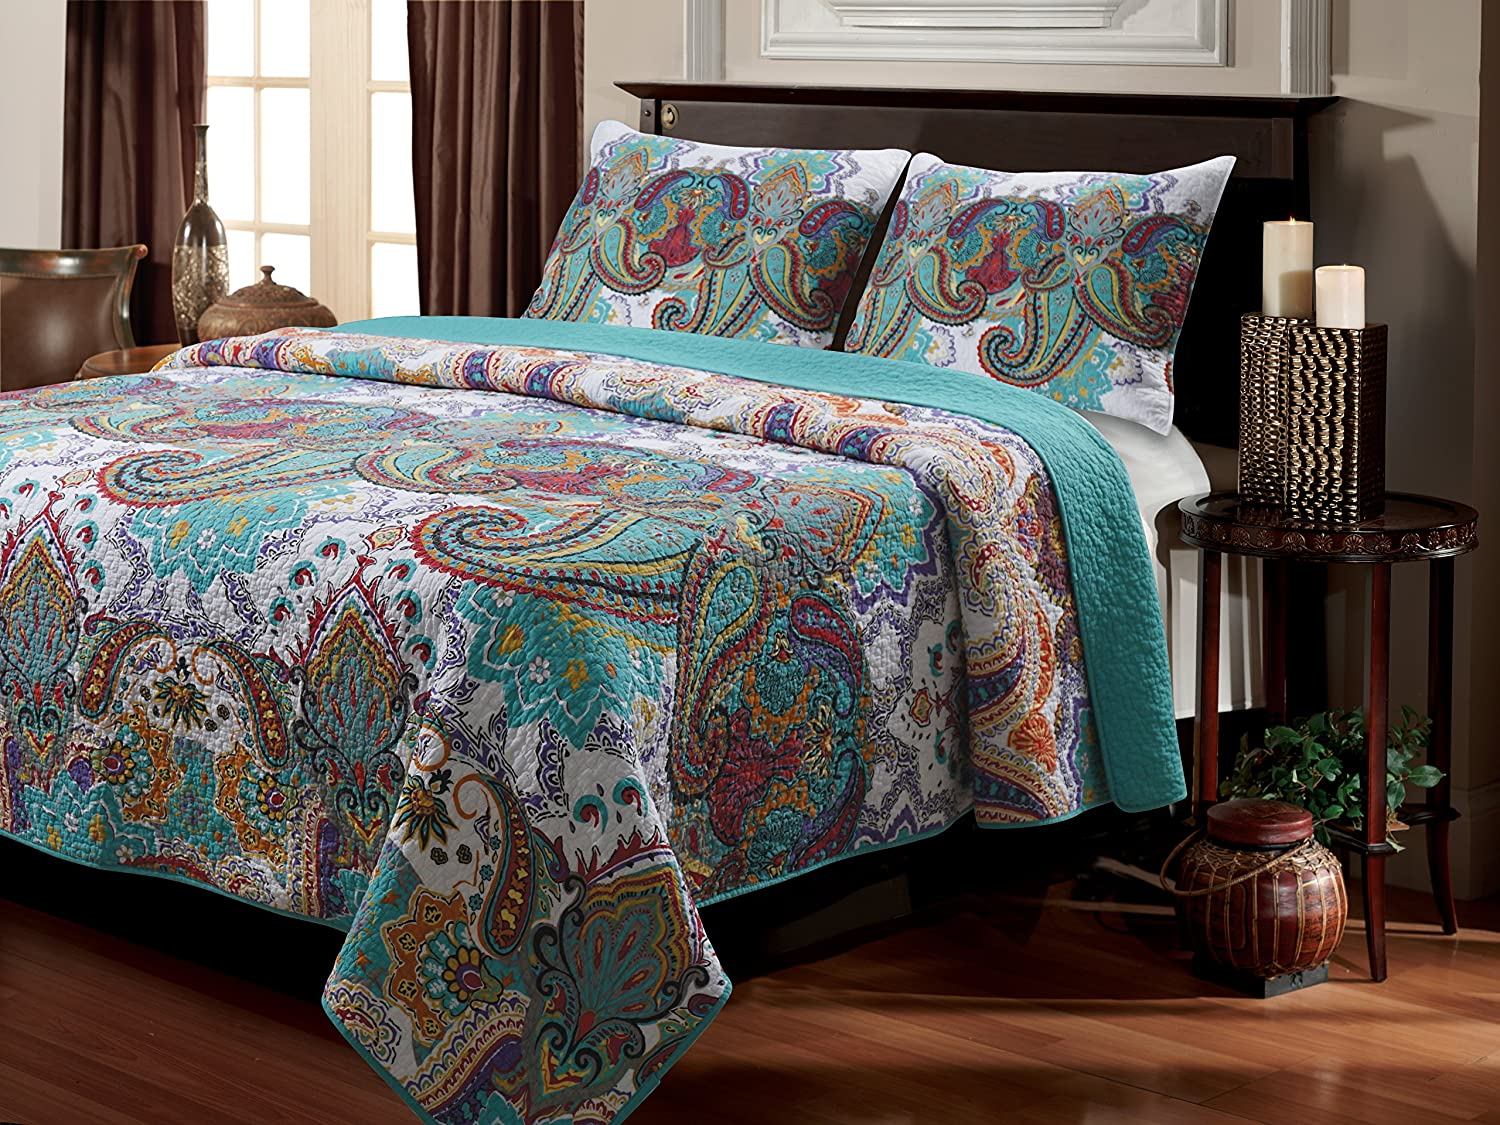 Greenland Home 3-Piece Nirvana Quilt Set, King